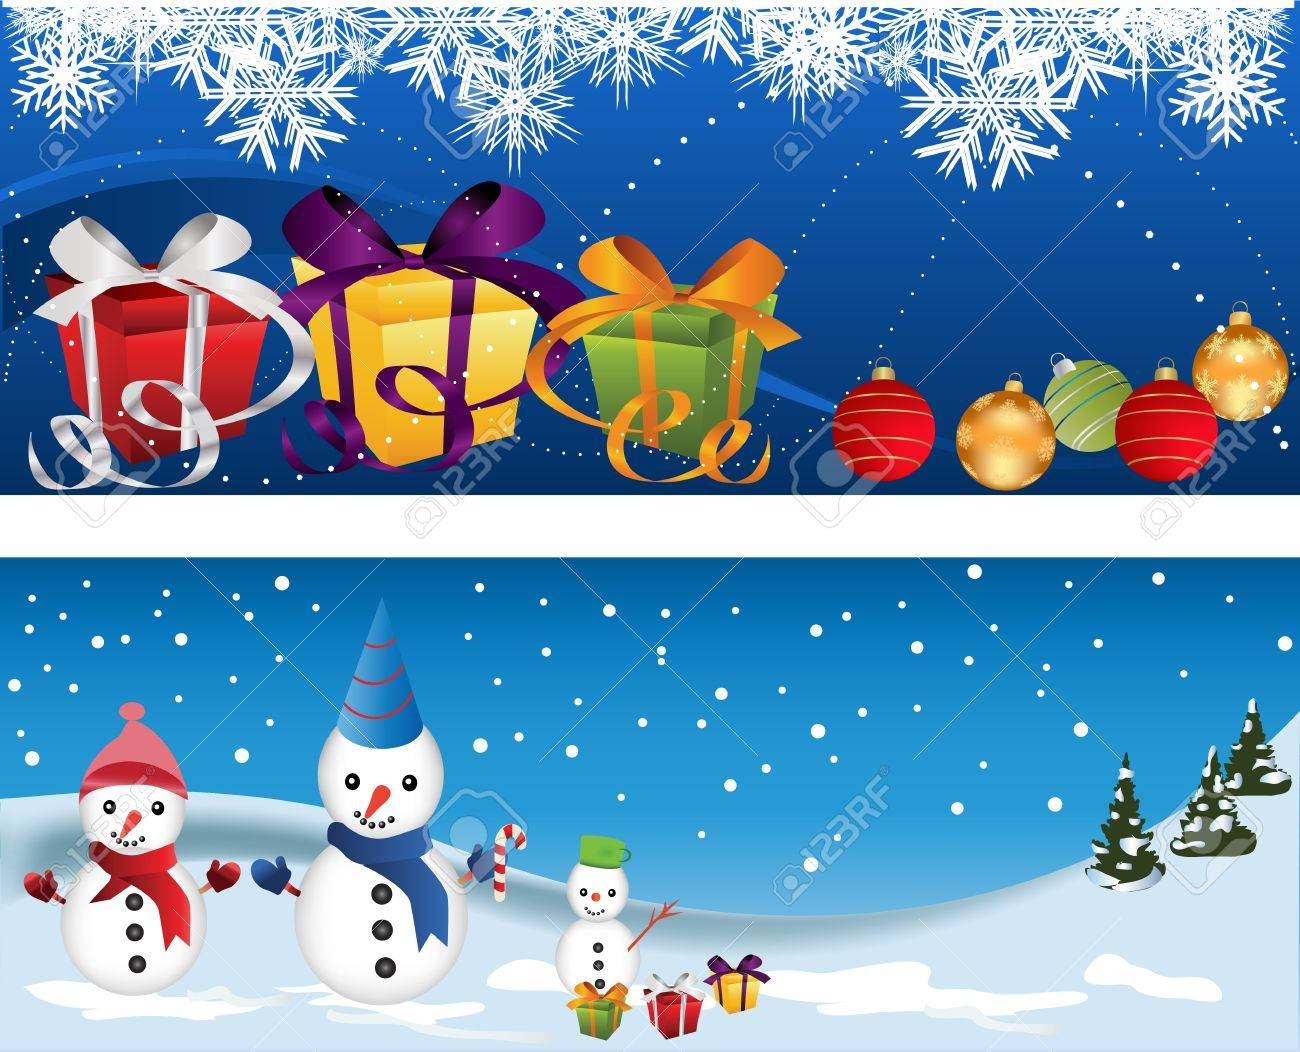 Free banner images for website - Website Header Or Banner Set With Snow Man And Decorations Stock Vector 16427514